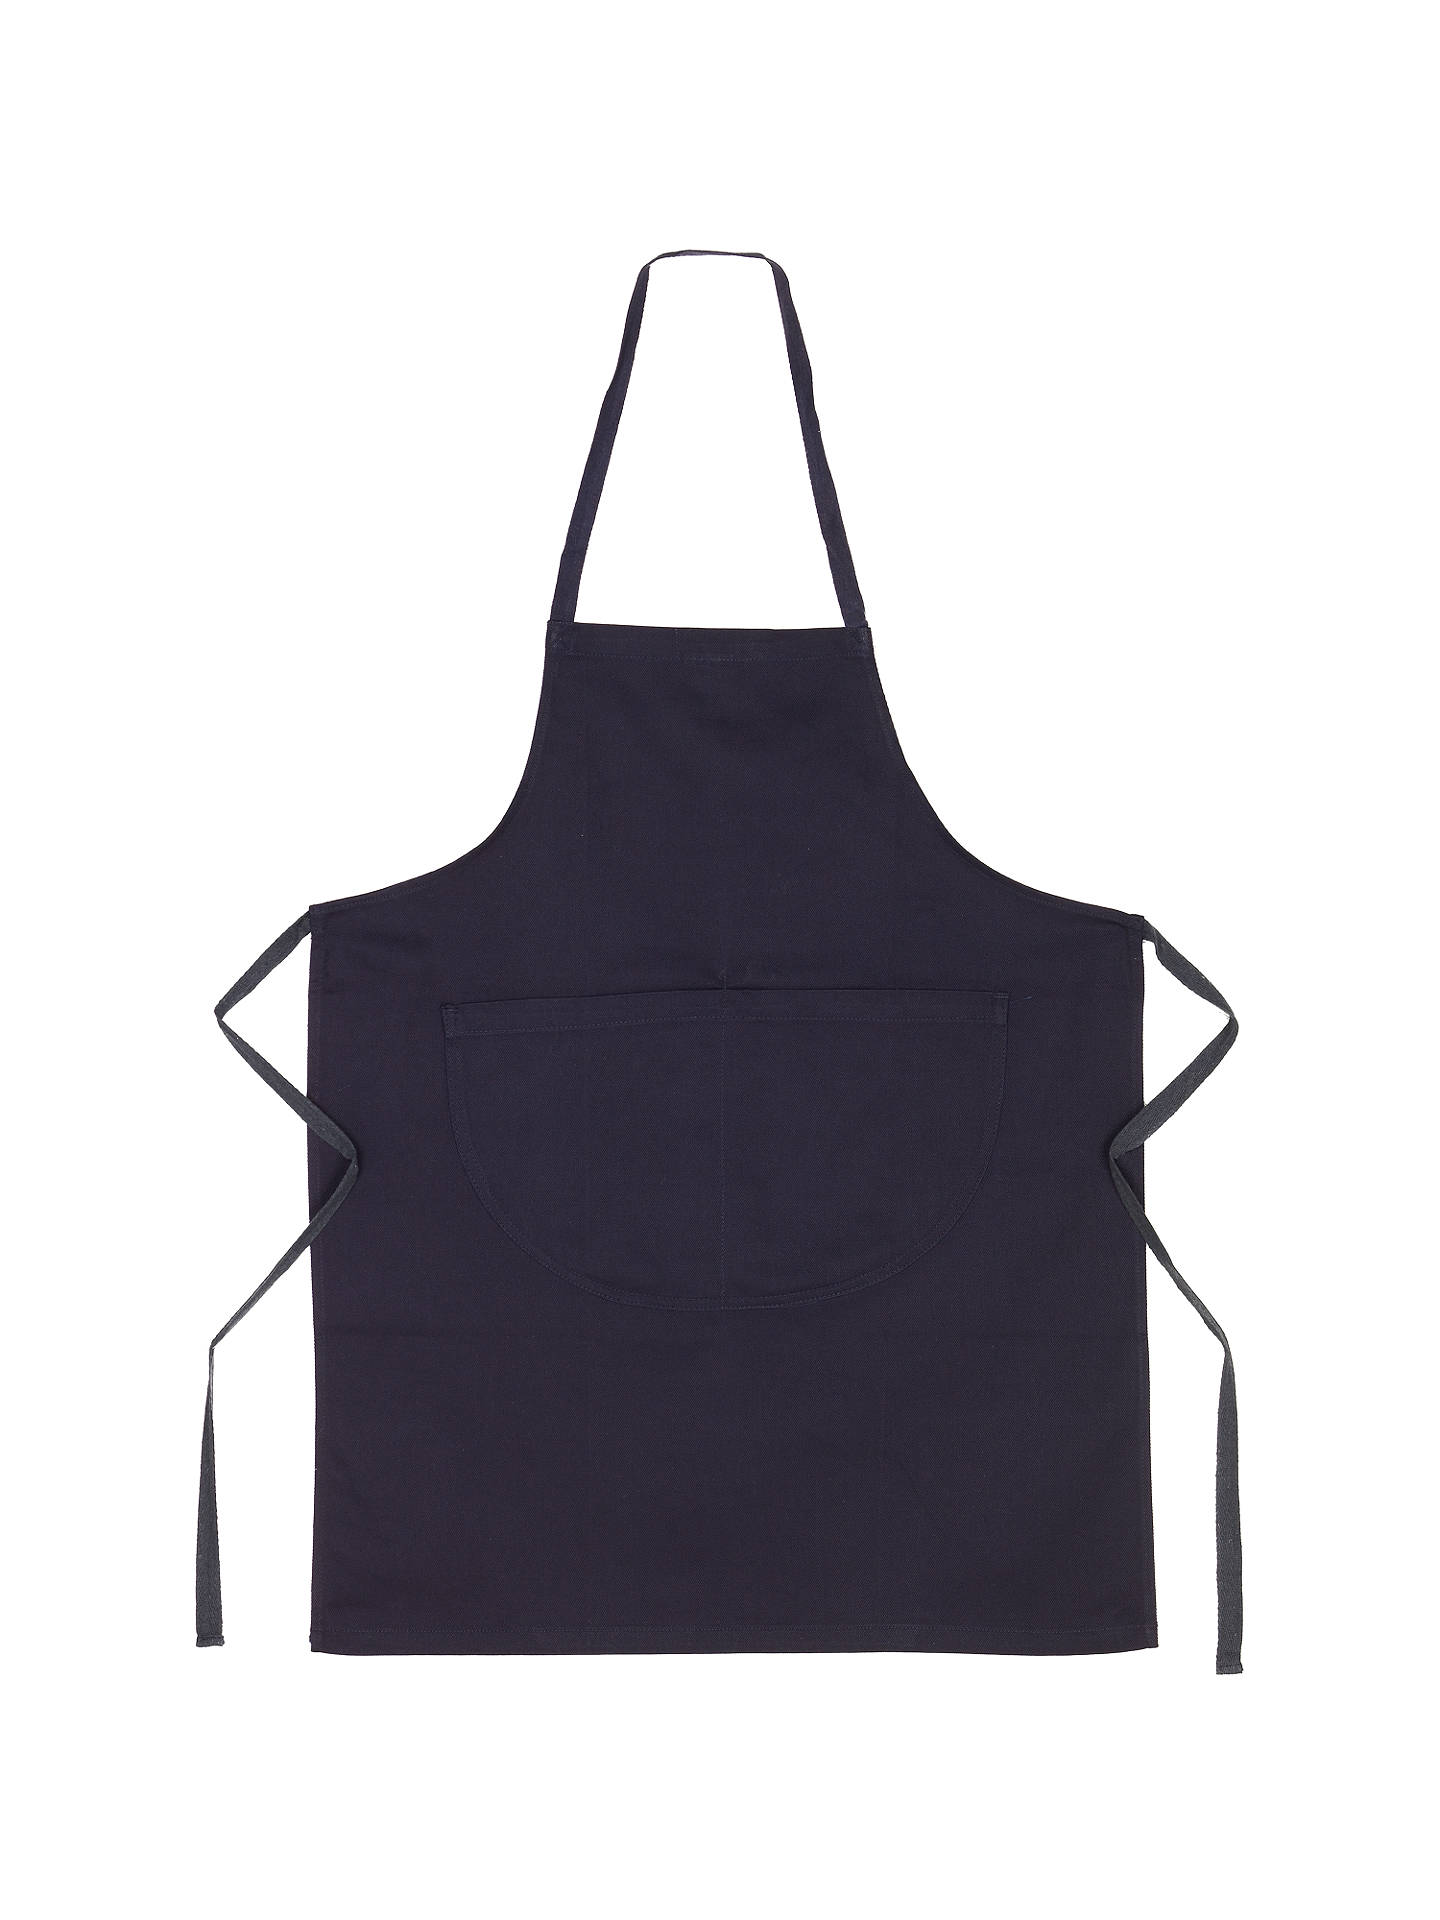 BuyJohn Lewis & Partners Craft Apron, Navy, Youth Online at johnlewis.com